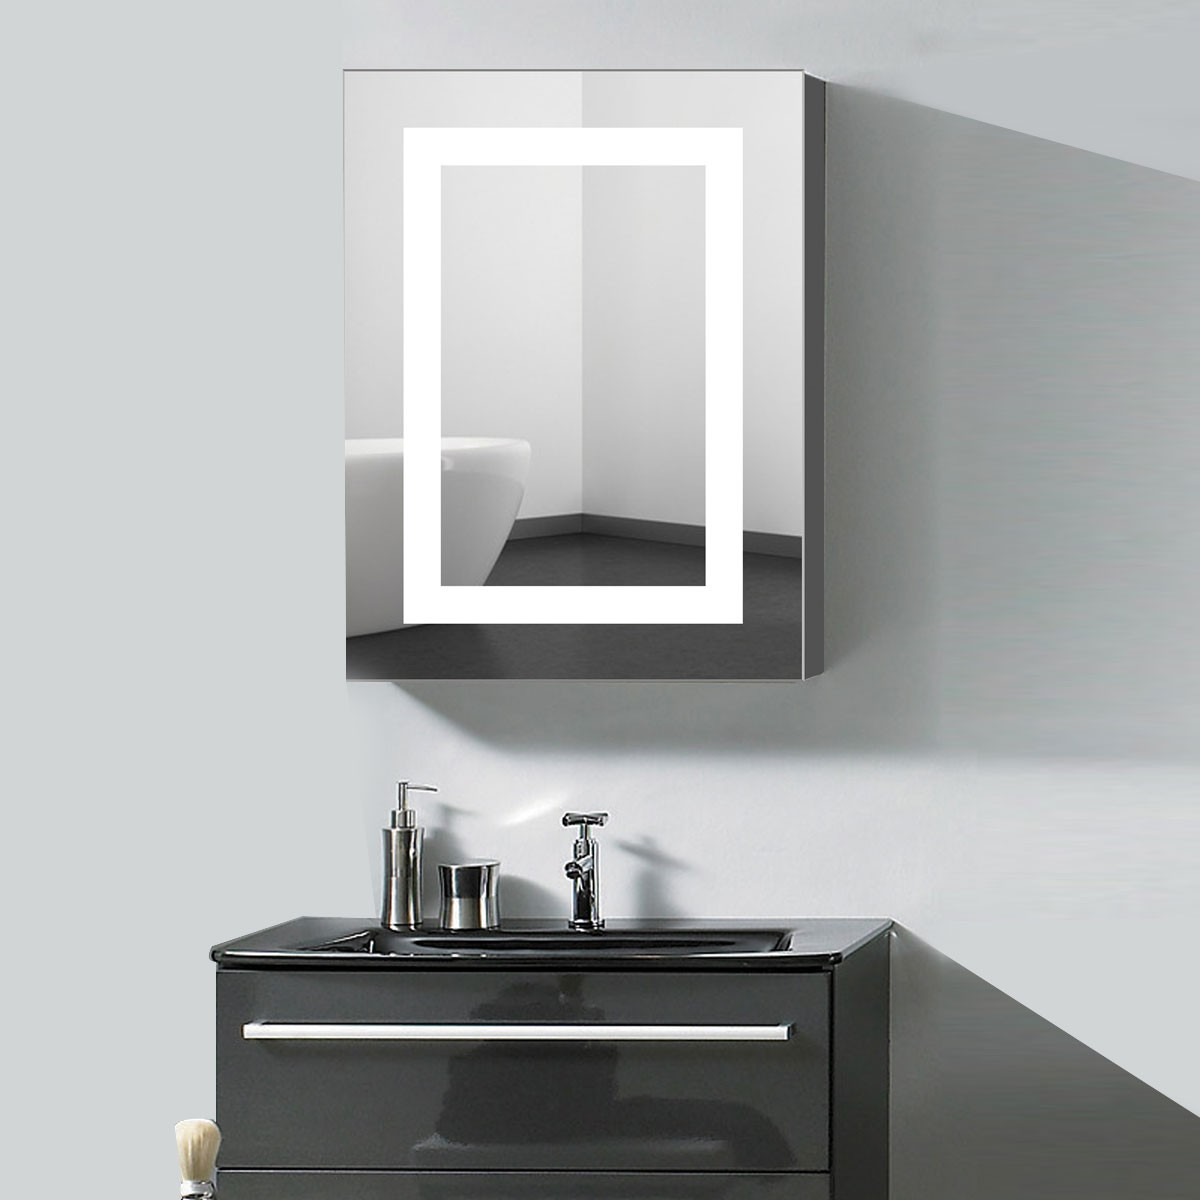 24 x 32  In. Vertical LED Mirror Cabinet with Infrared Sensor (NS168-2432-G)